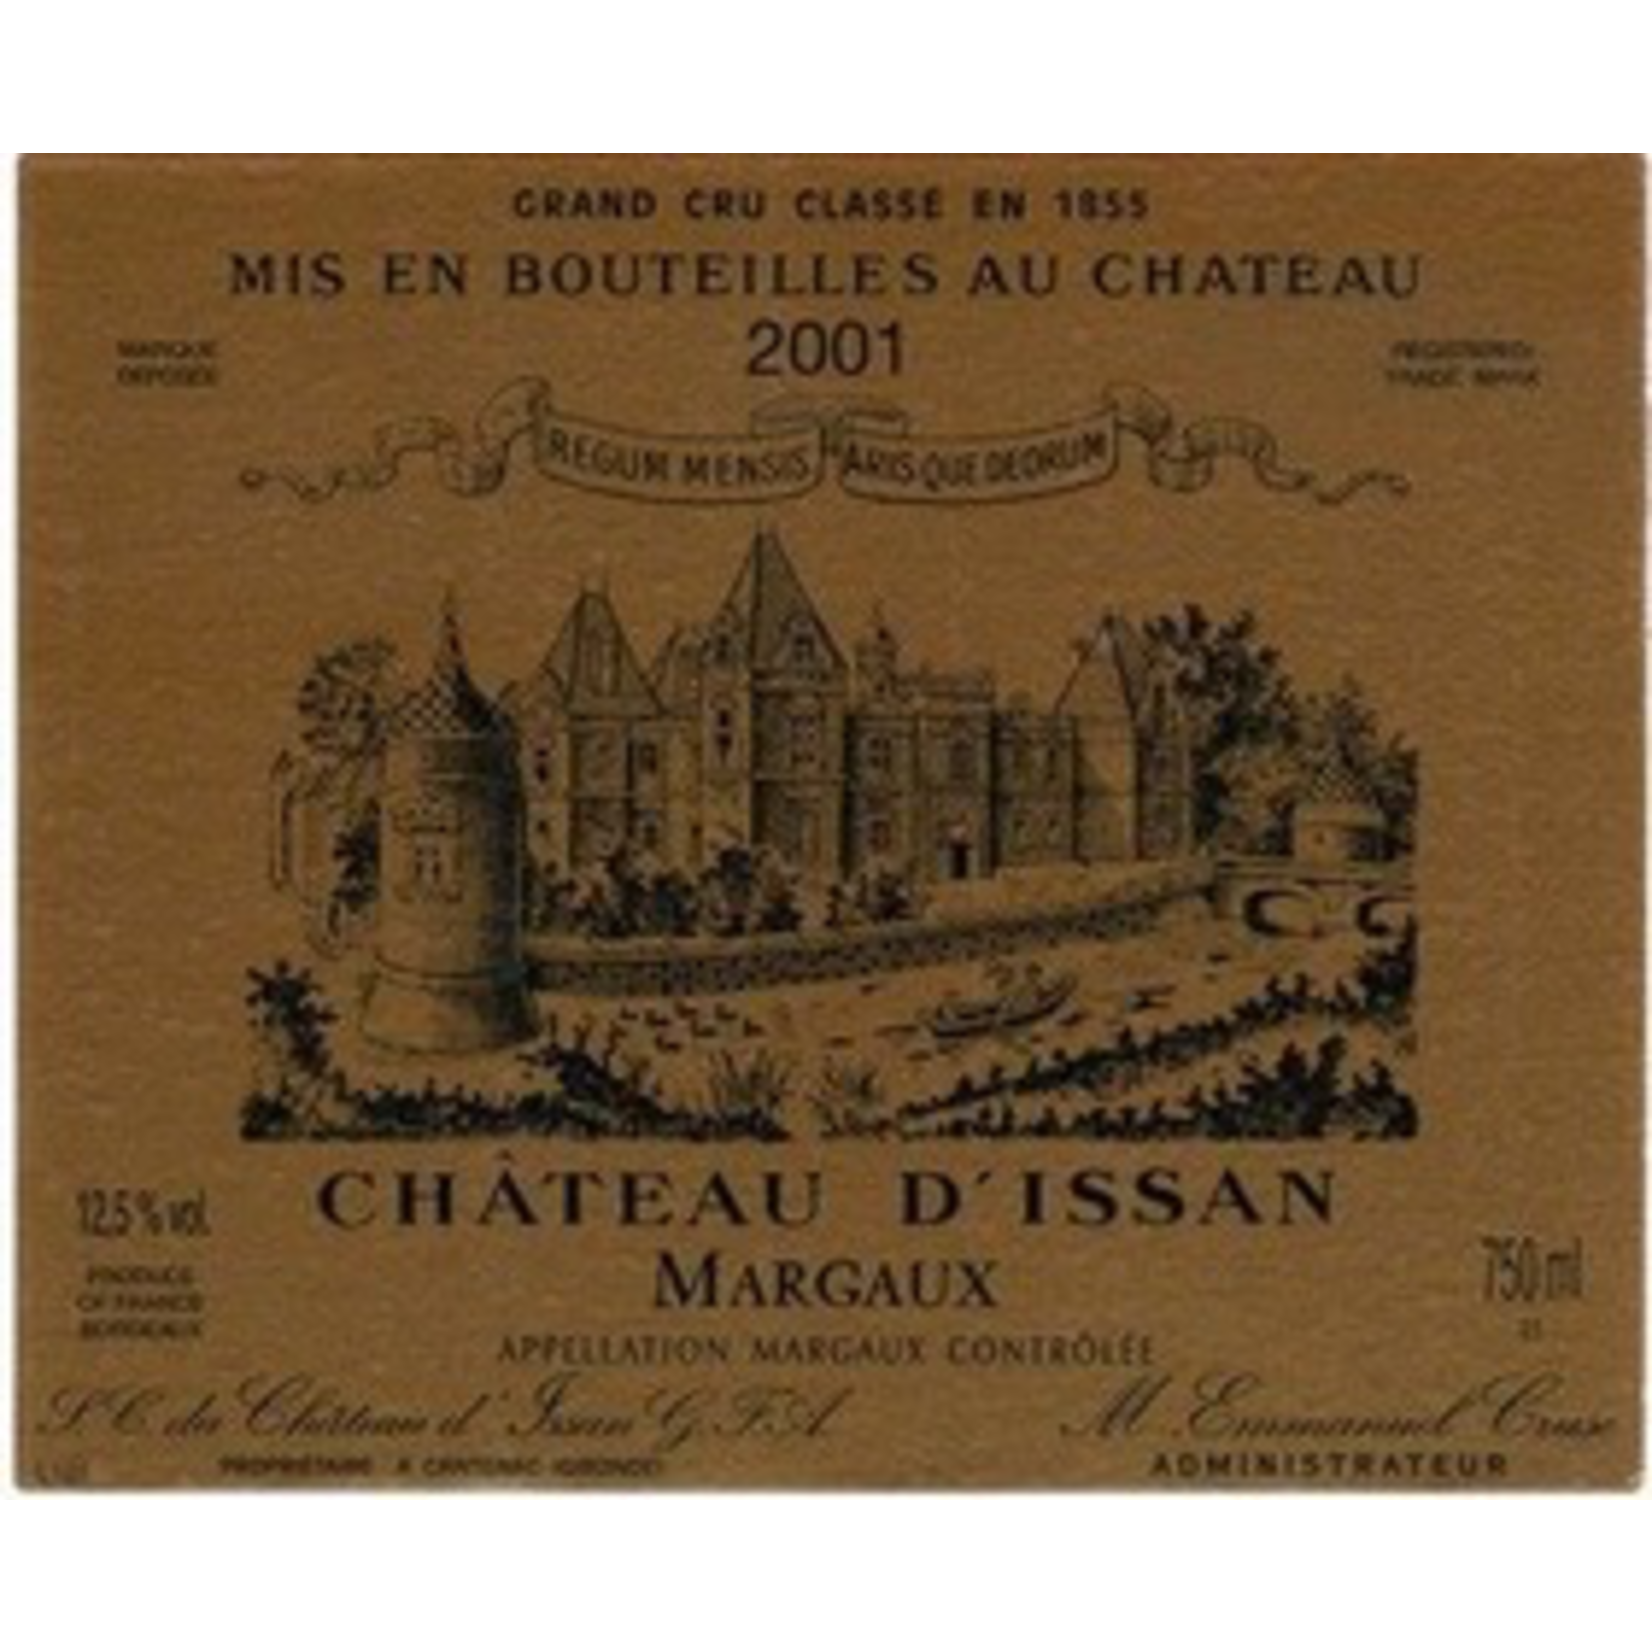 Wine Chateau d'Issan Margaux 2001